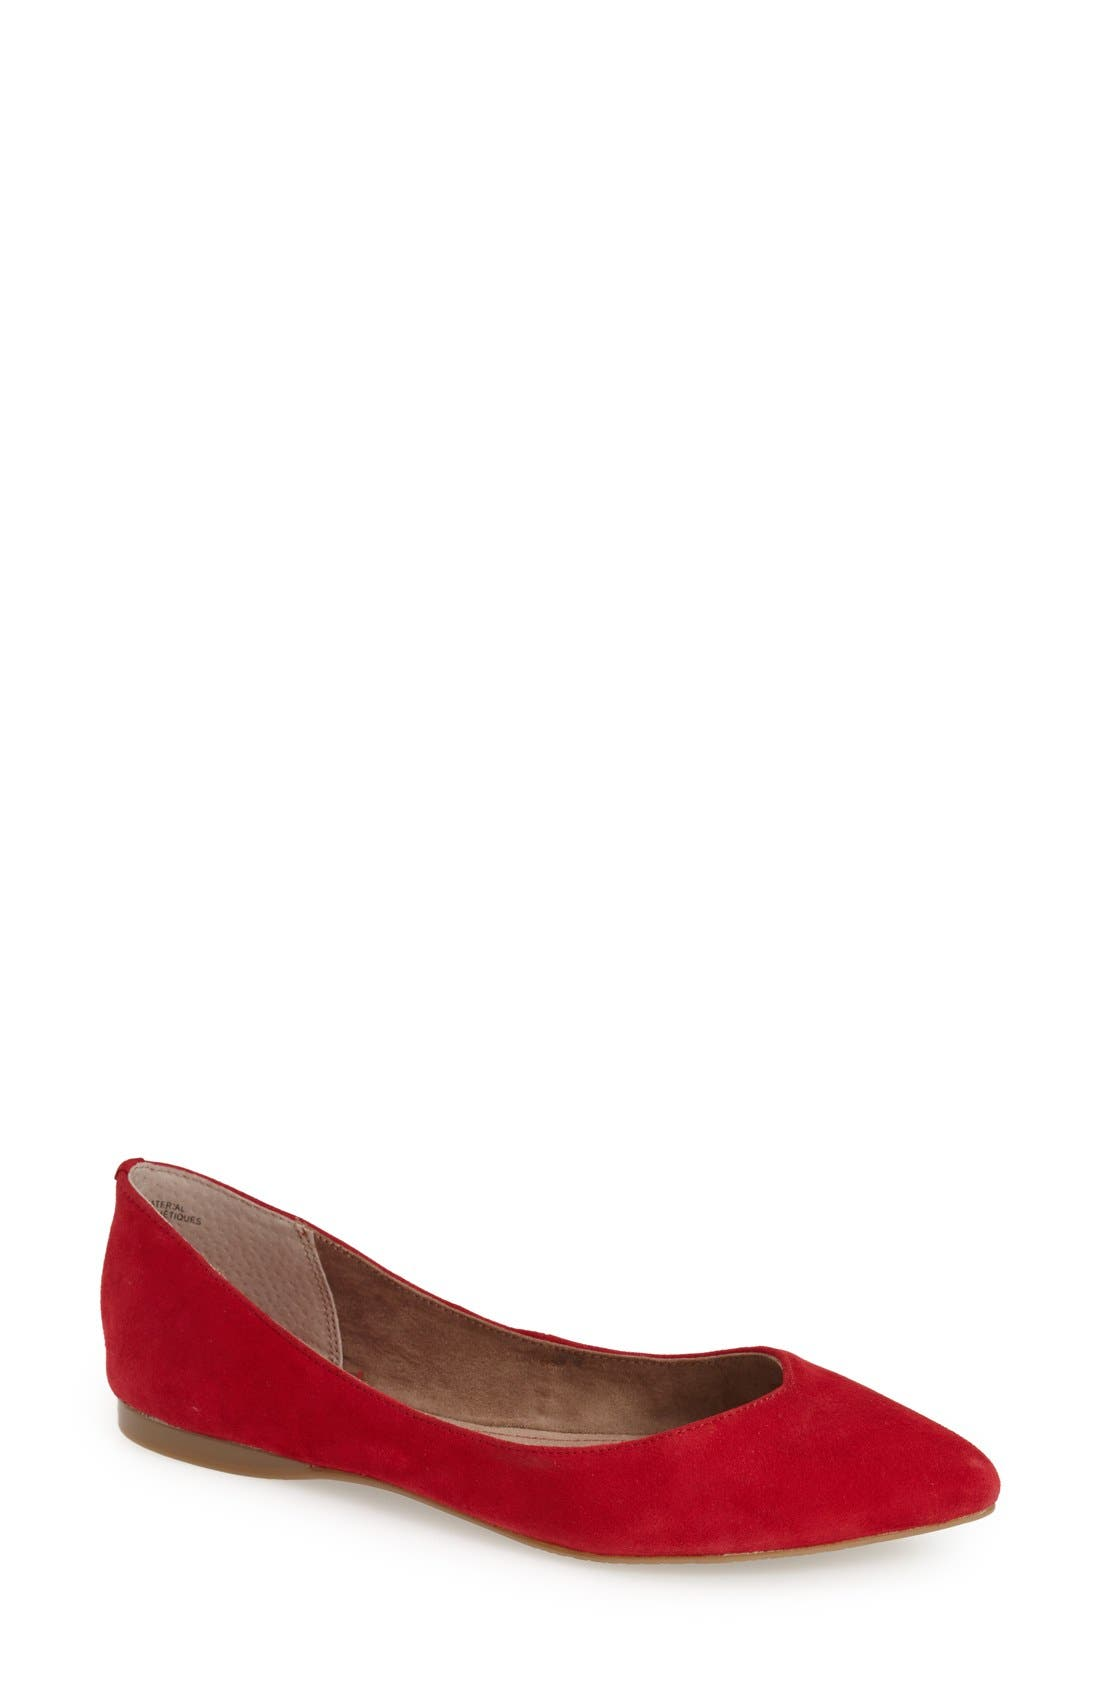 ,                             'Moveover' Pointy Toe Leather Flat,                             Main thumbnail 37, color,                             612